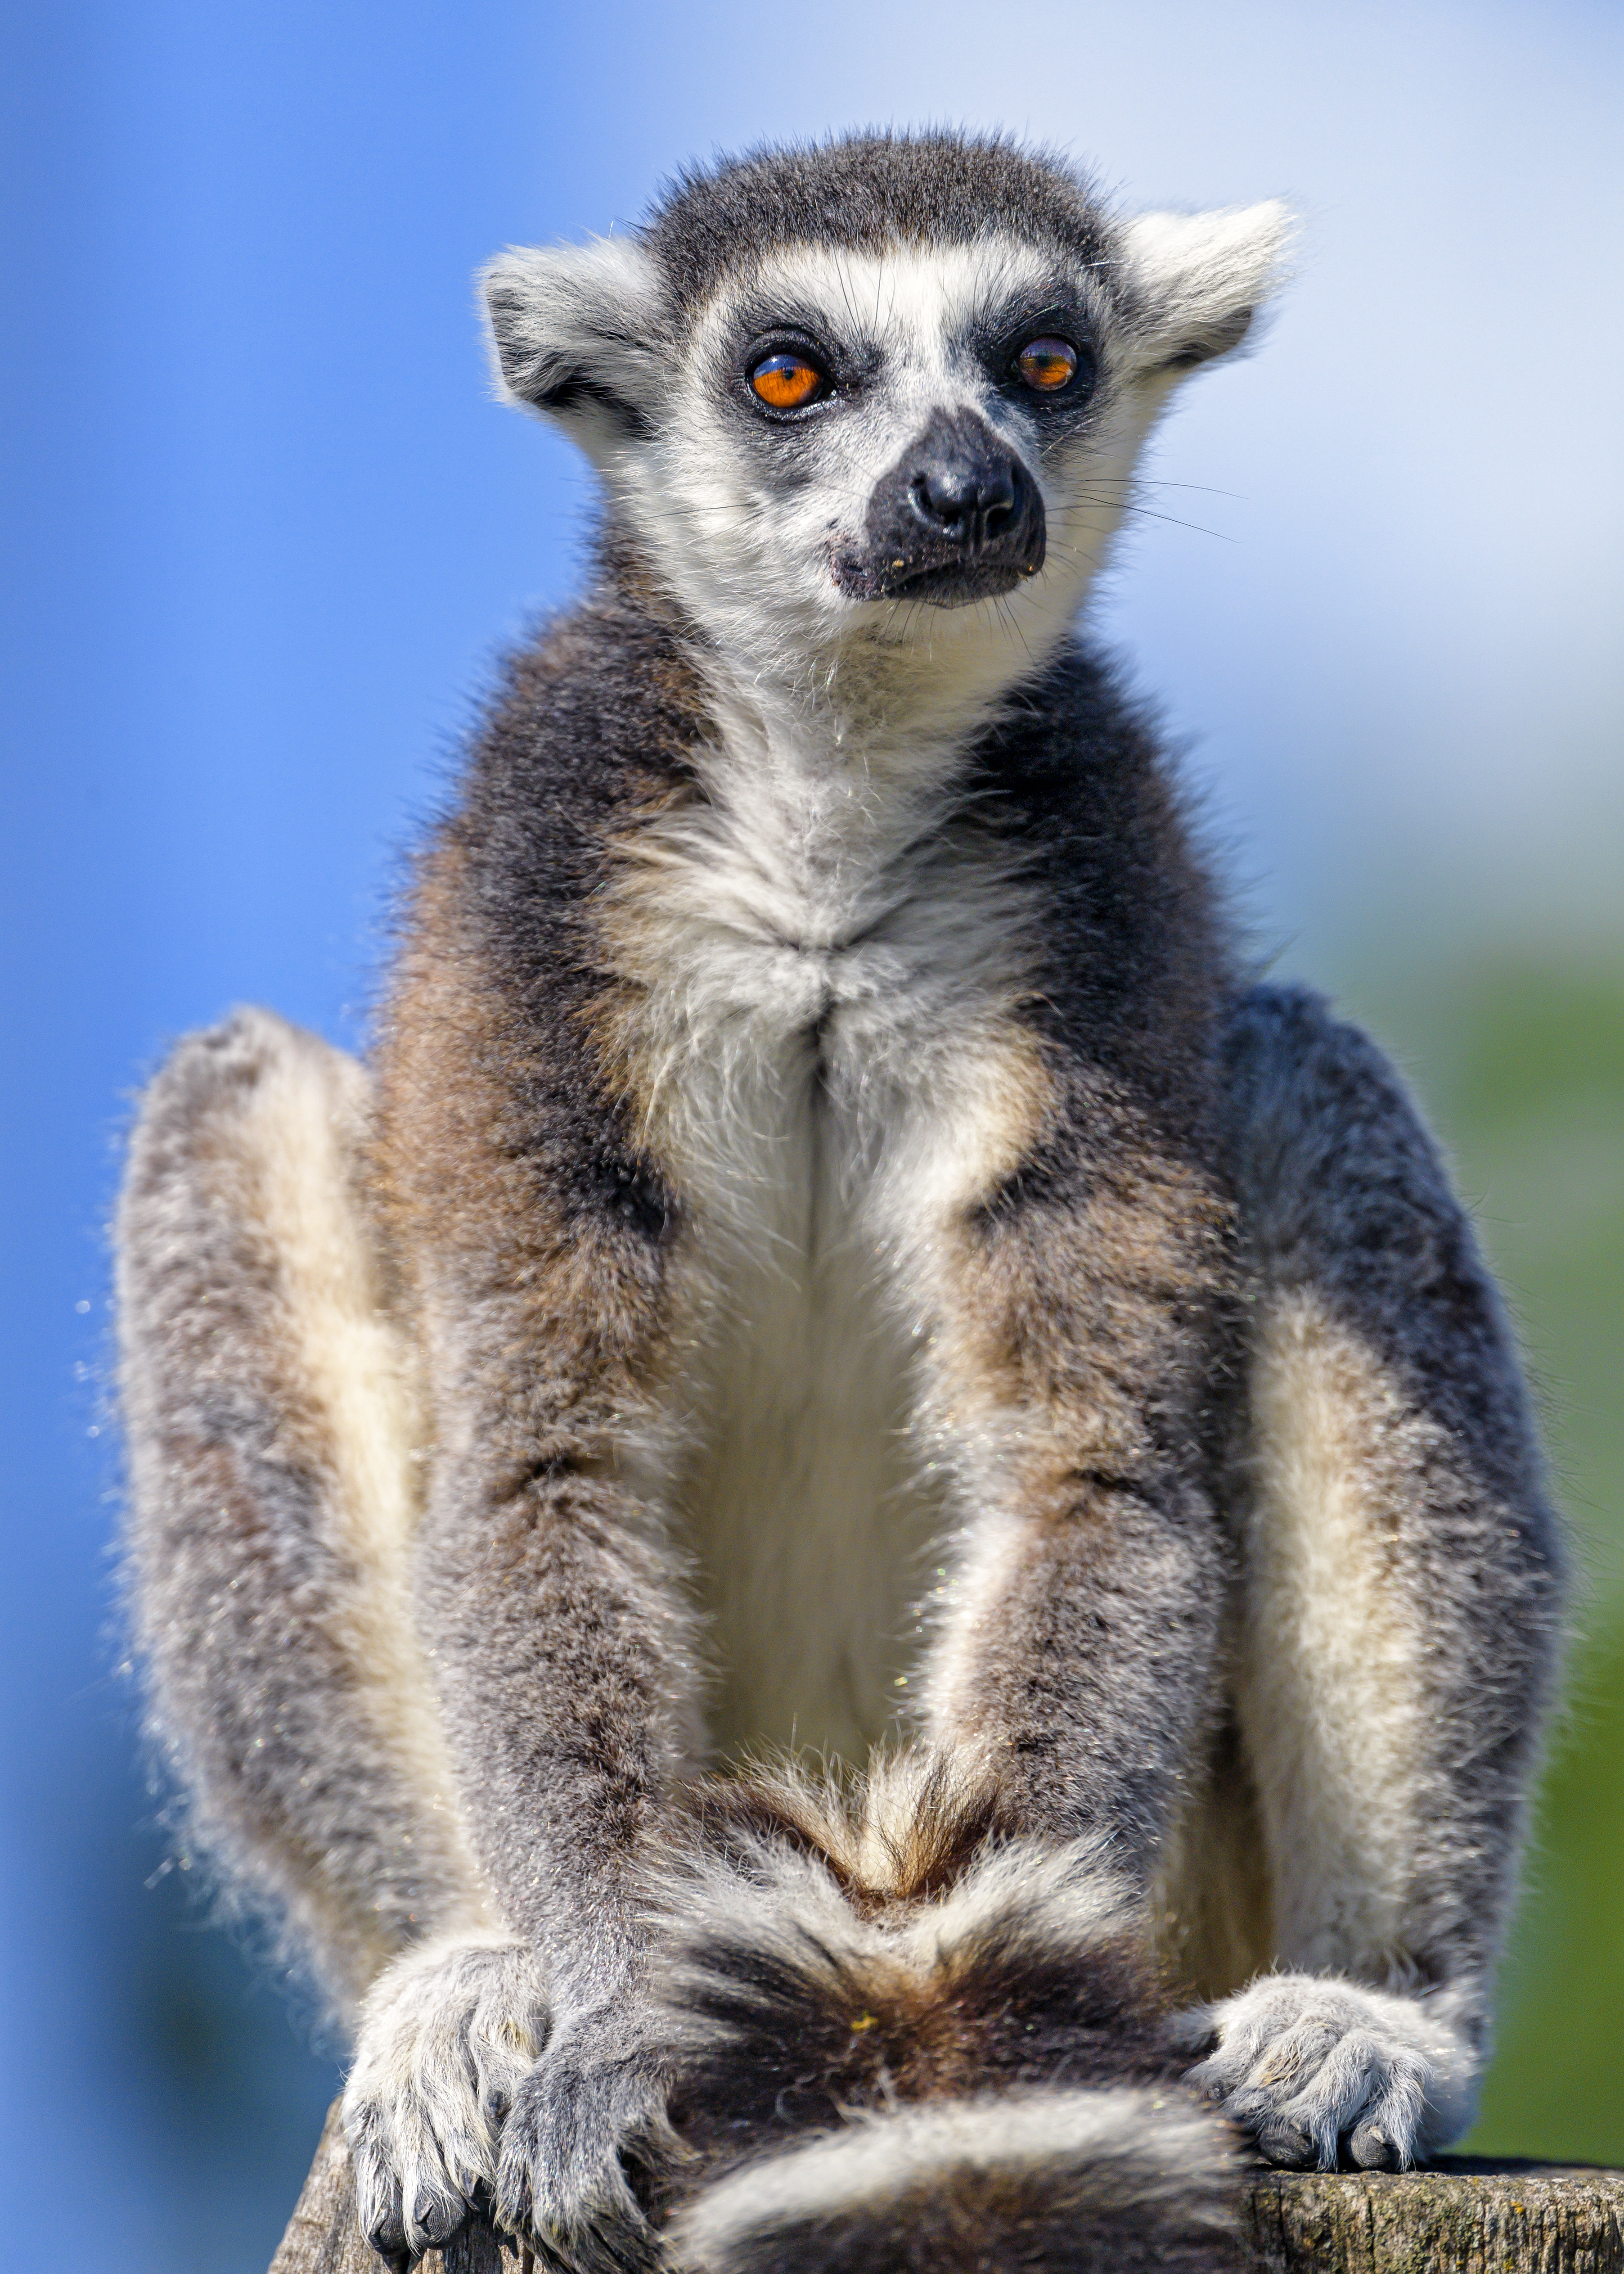 52908 download wallpaper Animals, Lemur, Animal, Sight, Opinion, Fluffy screensavers and pictures for free